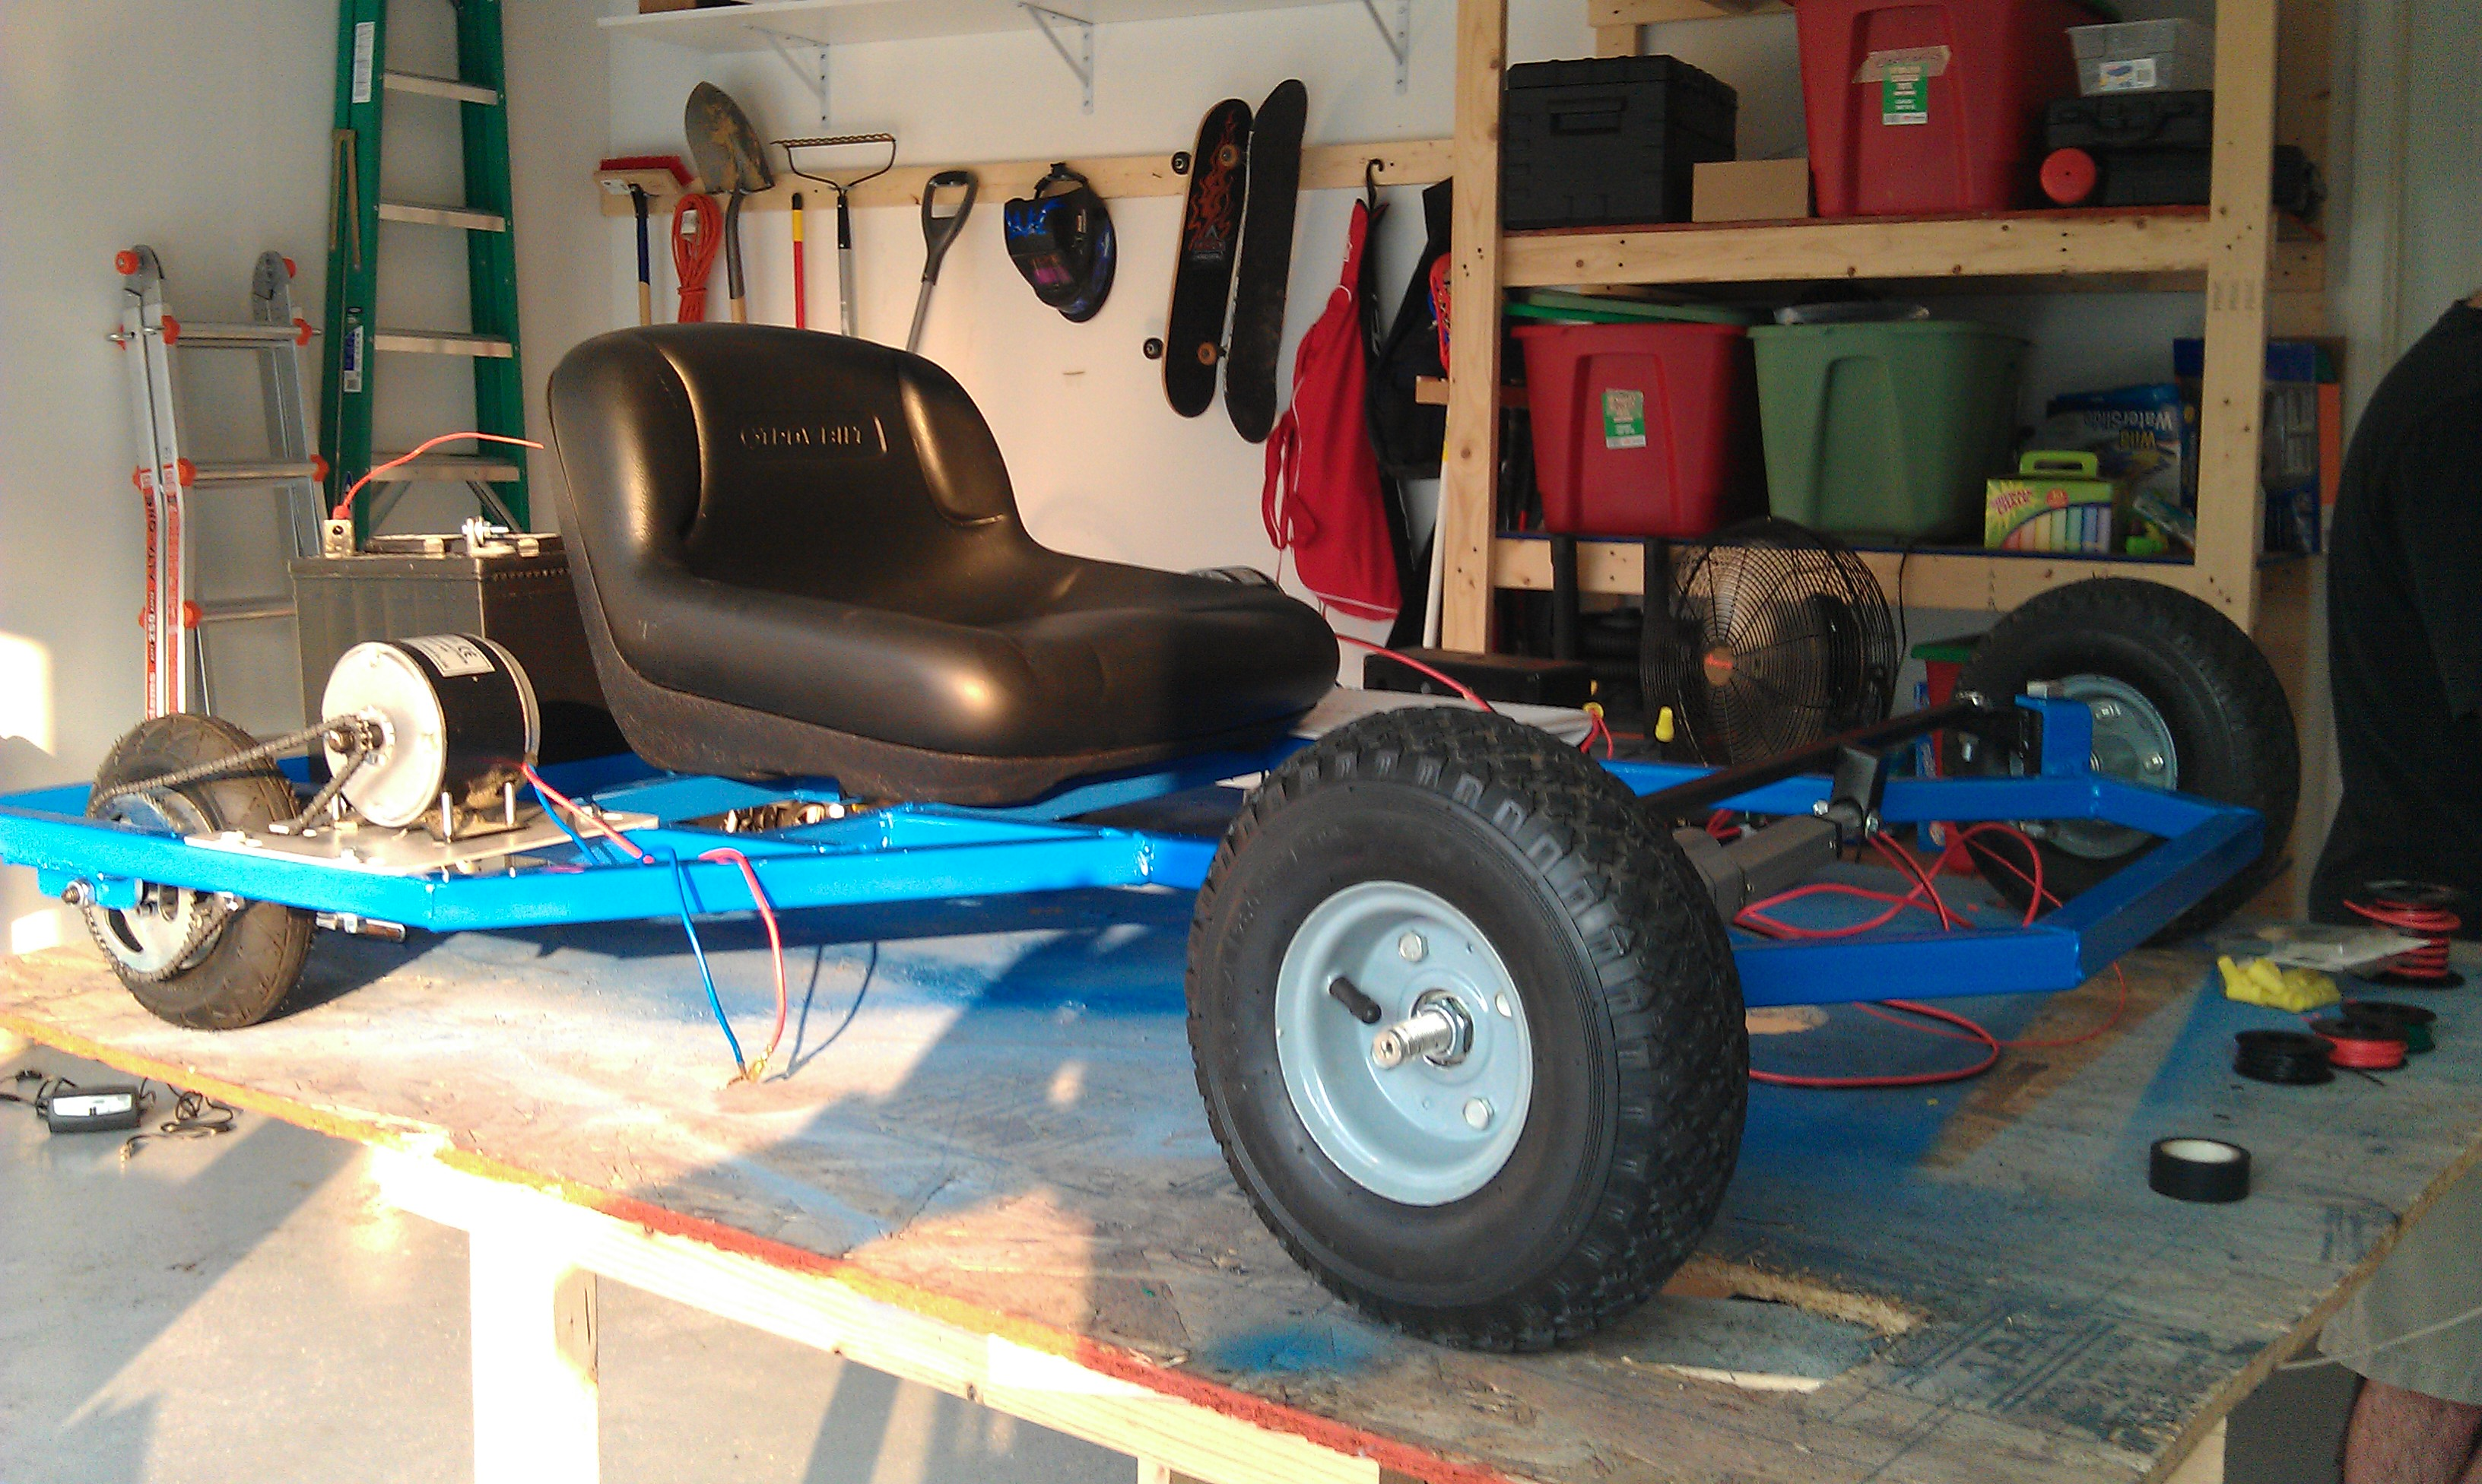 Wii Kart of Awesomeness - Instructable